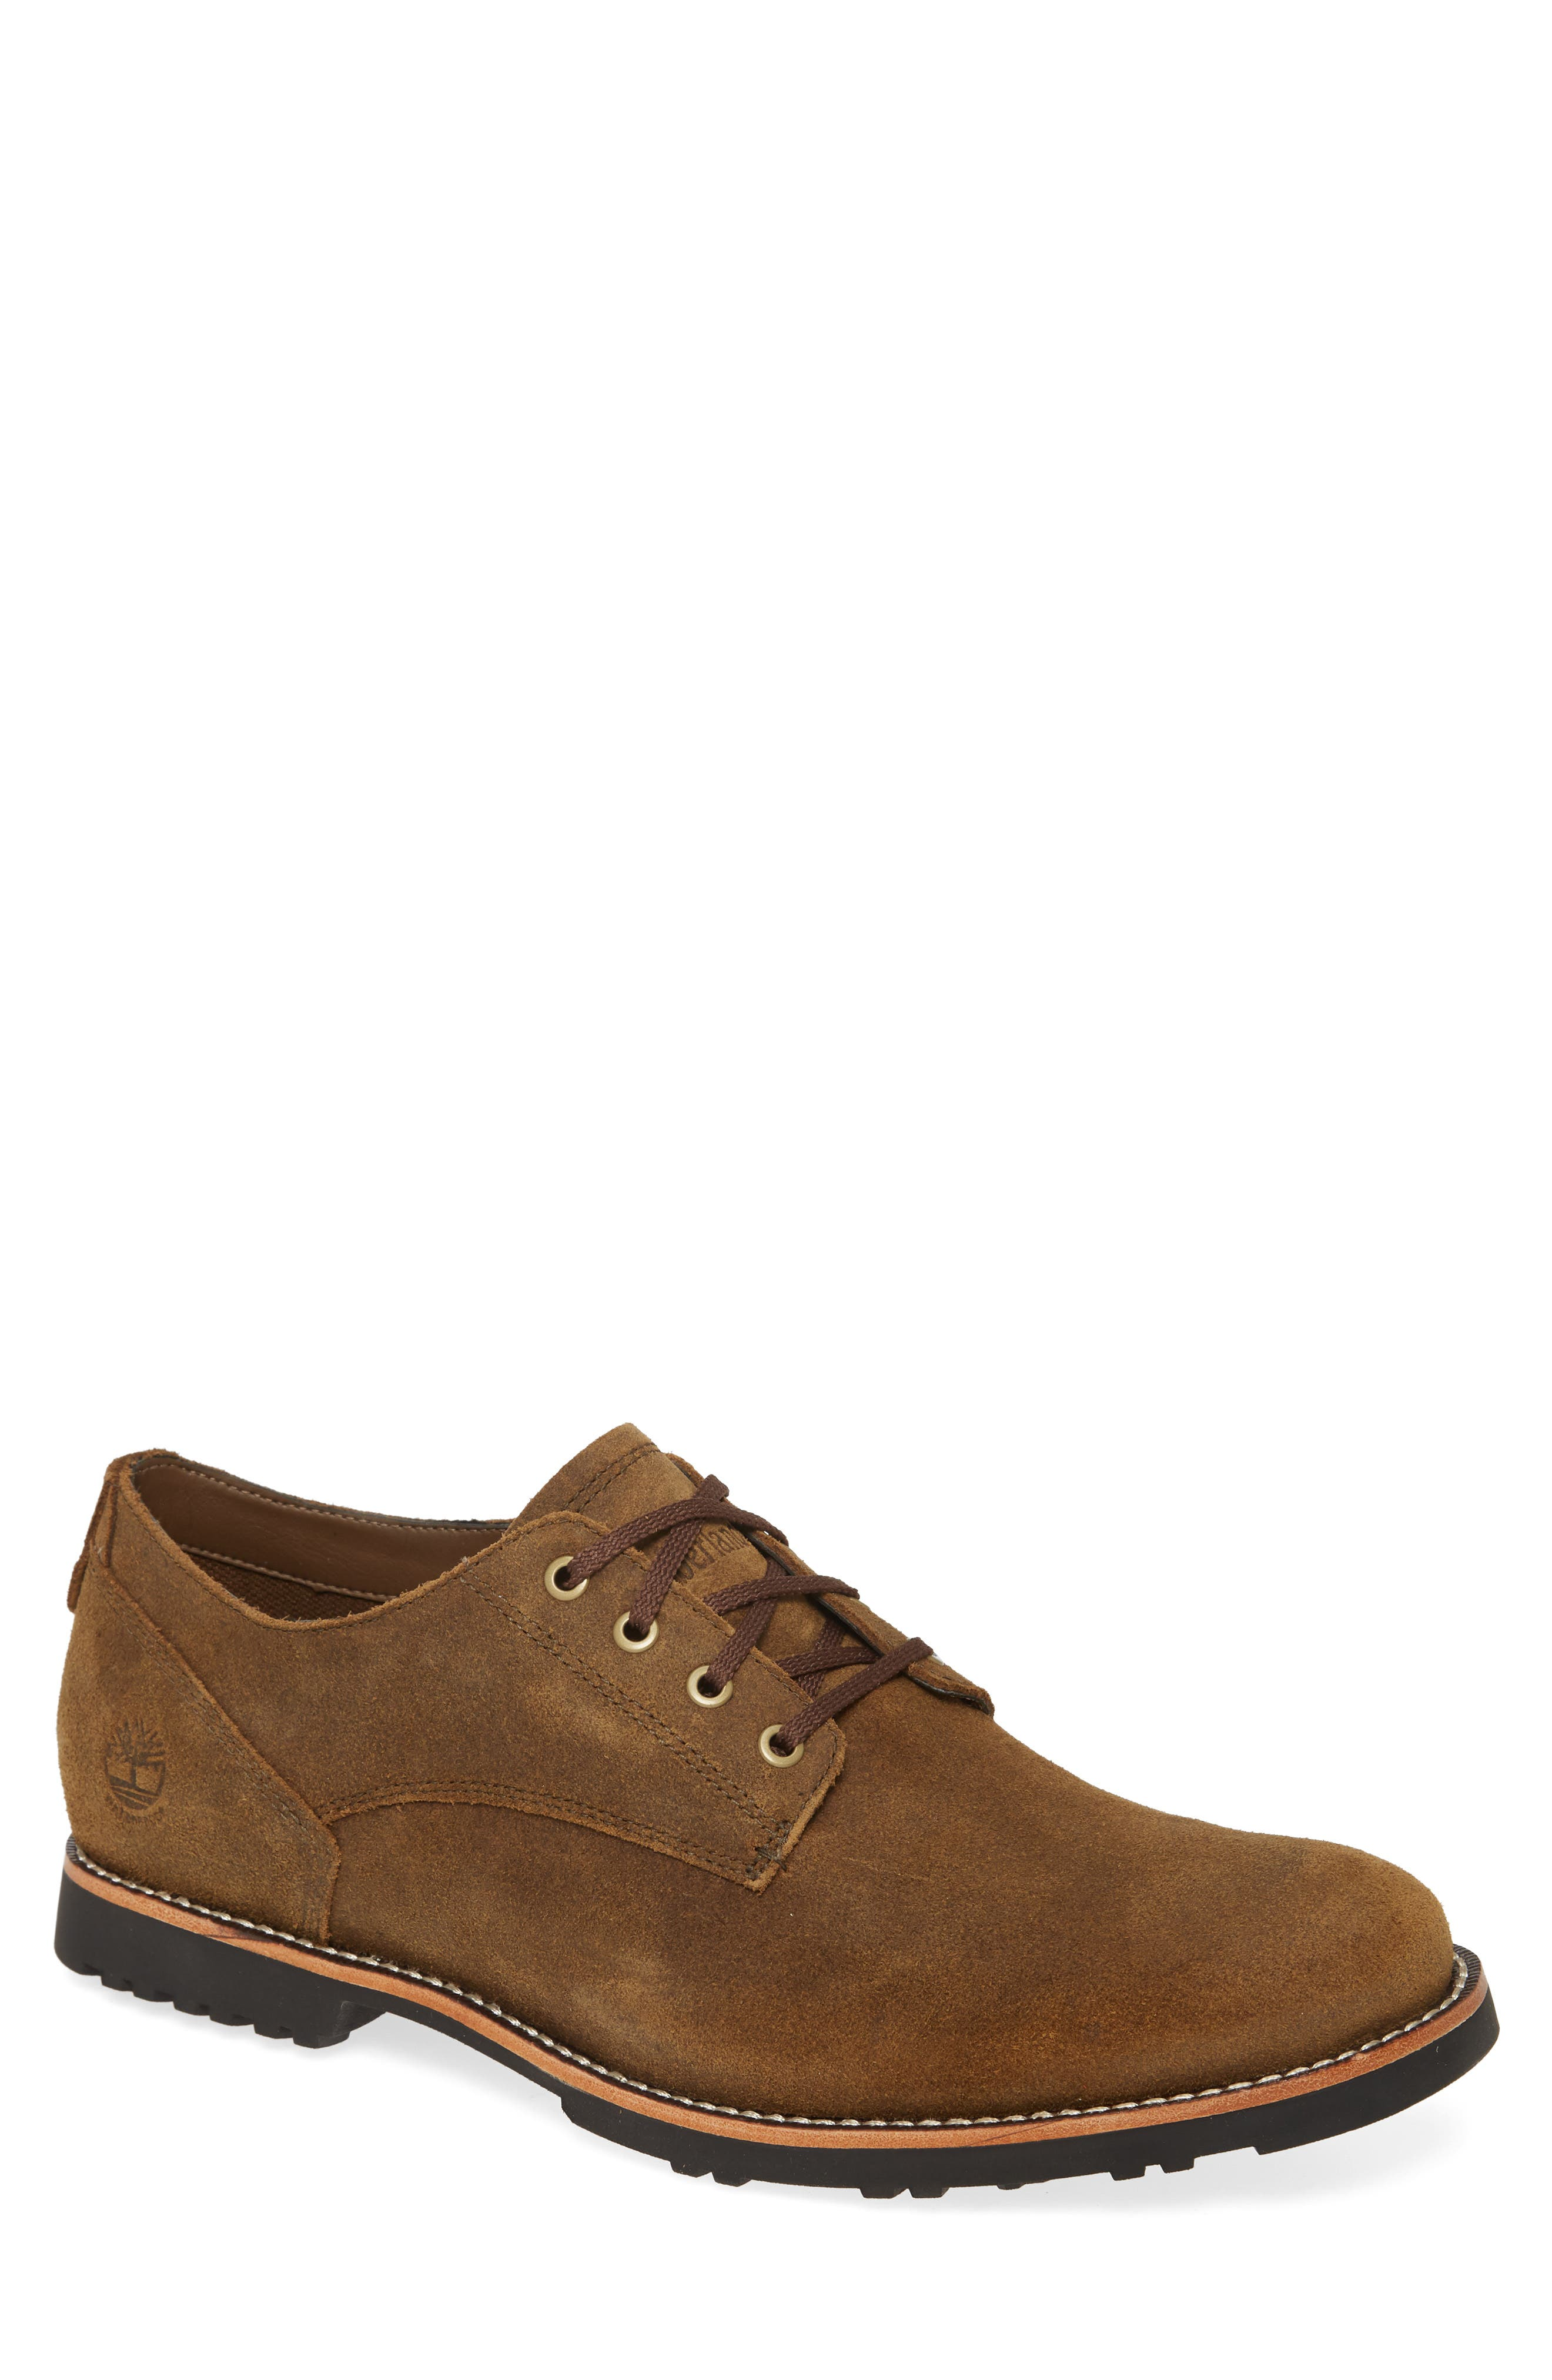 Image of Timberland Kendrick Waterproof Leather Derby